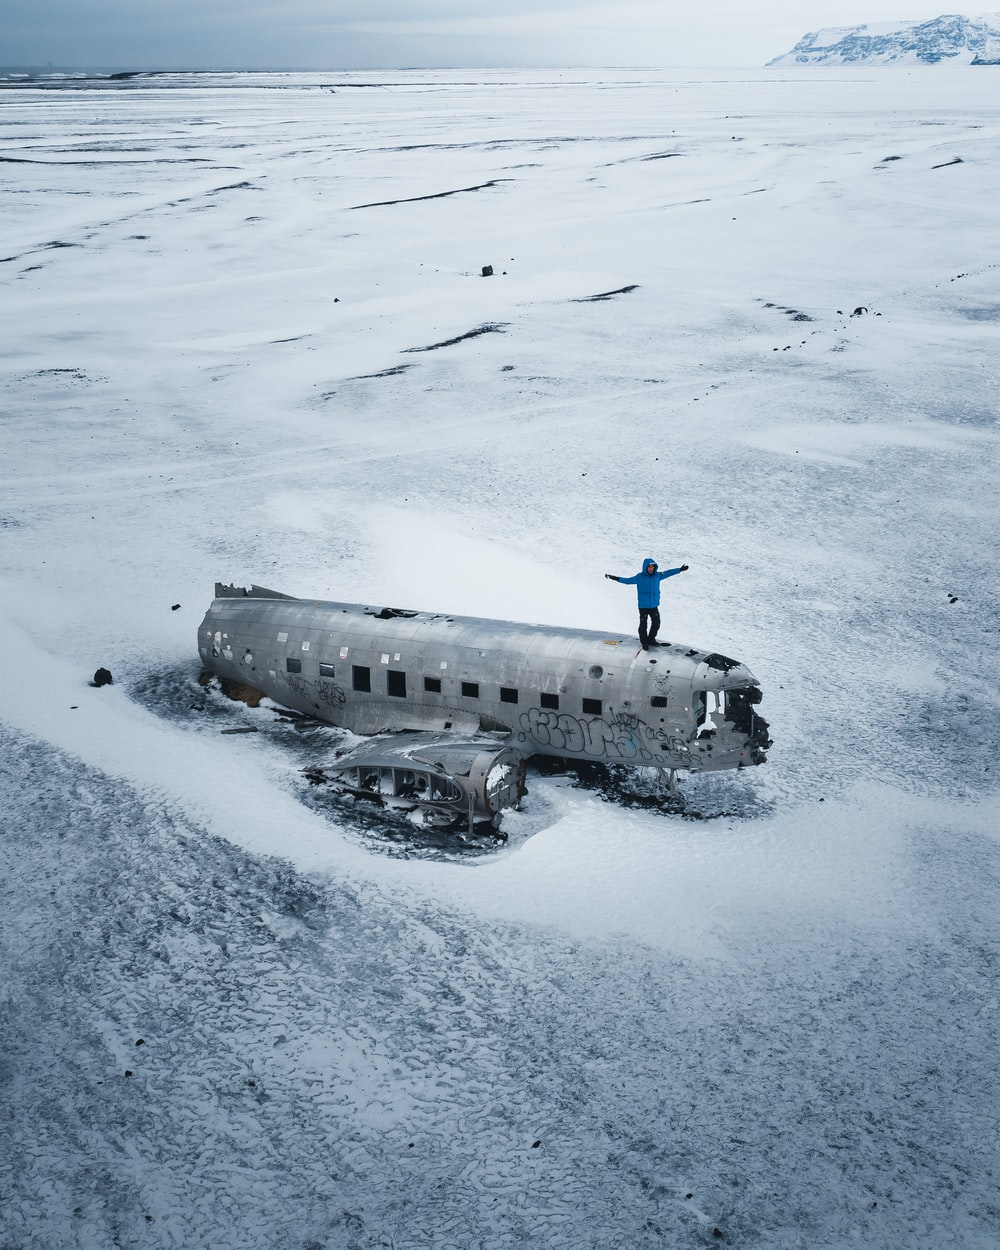 black and white ship on snow covered ground during daytime